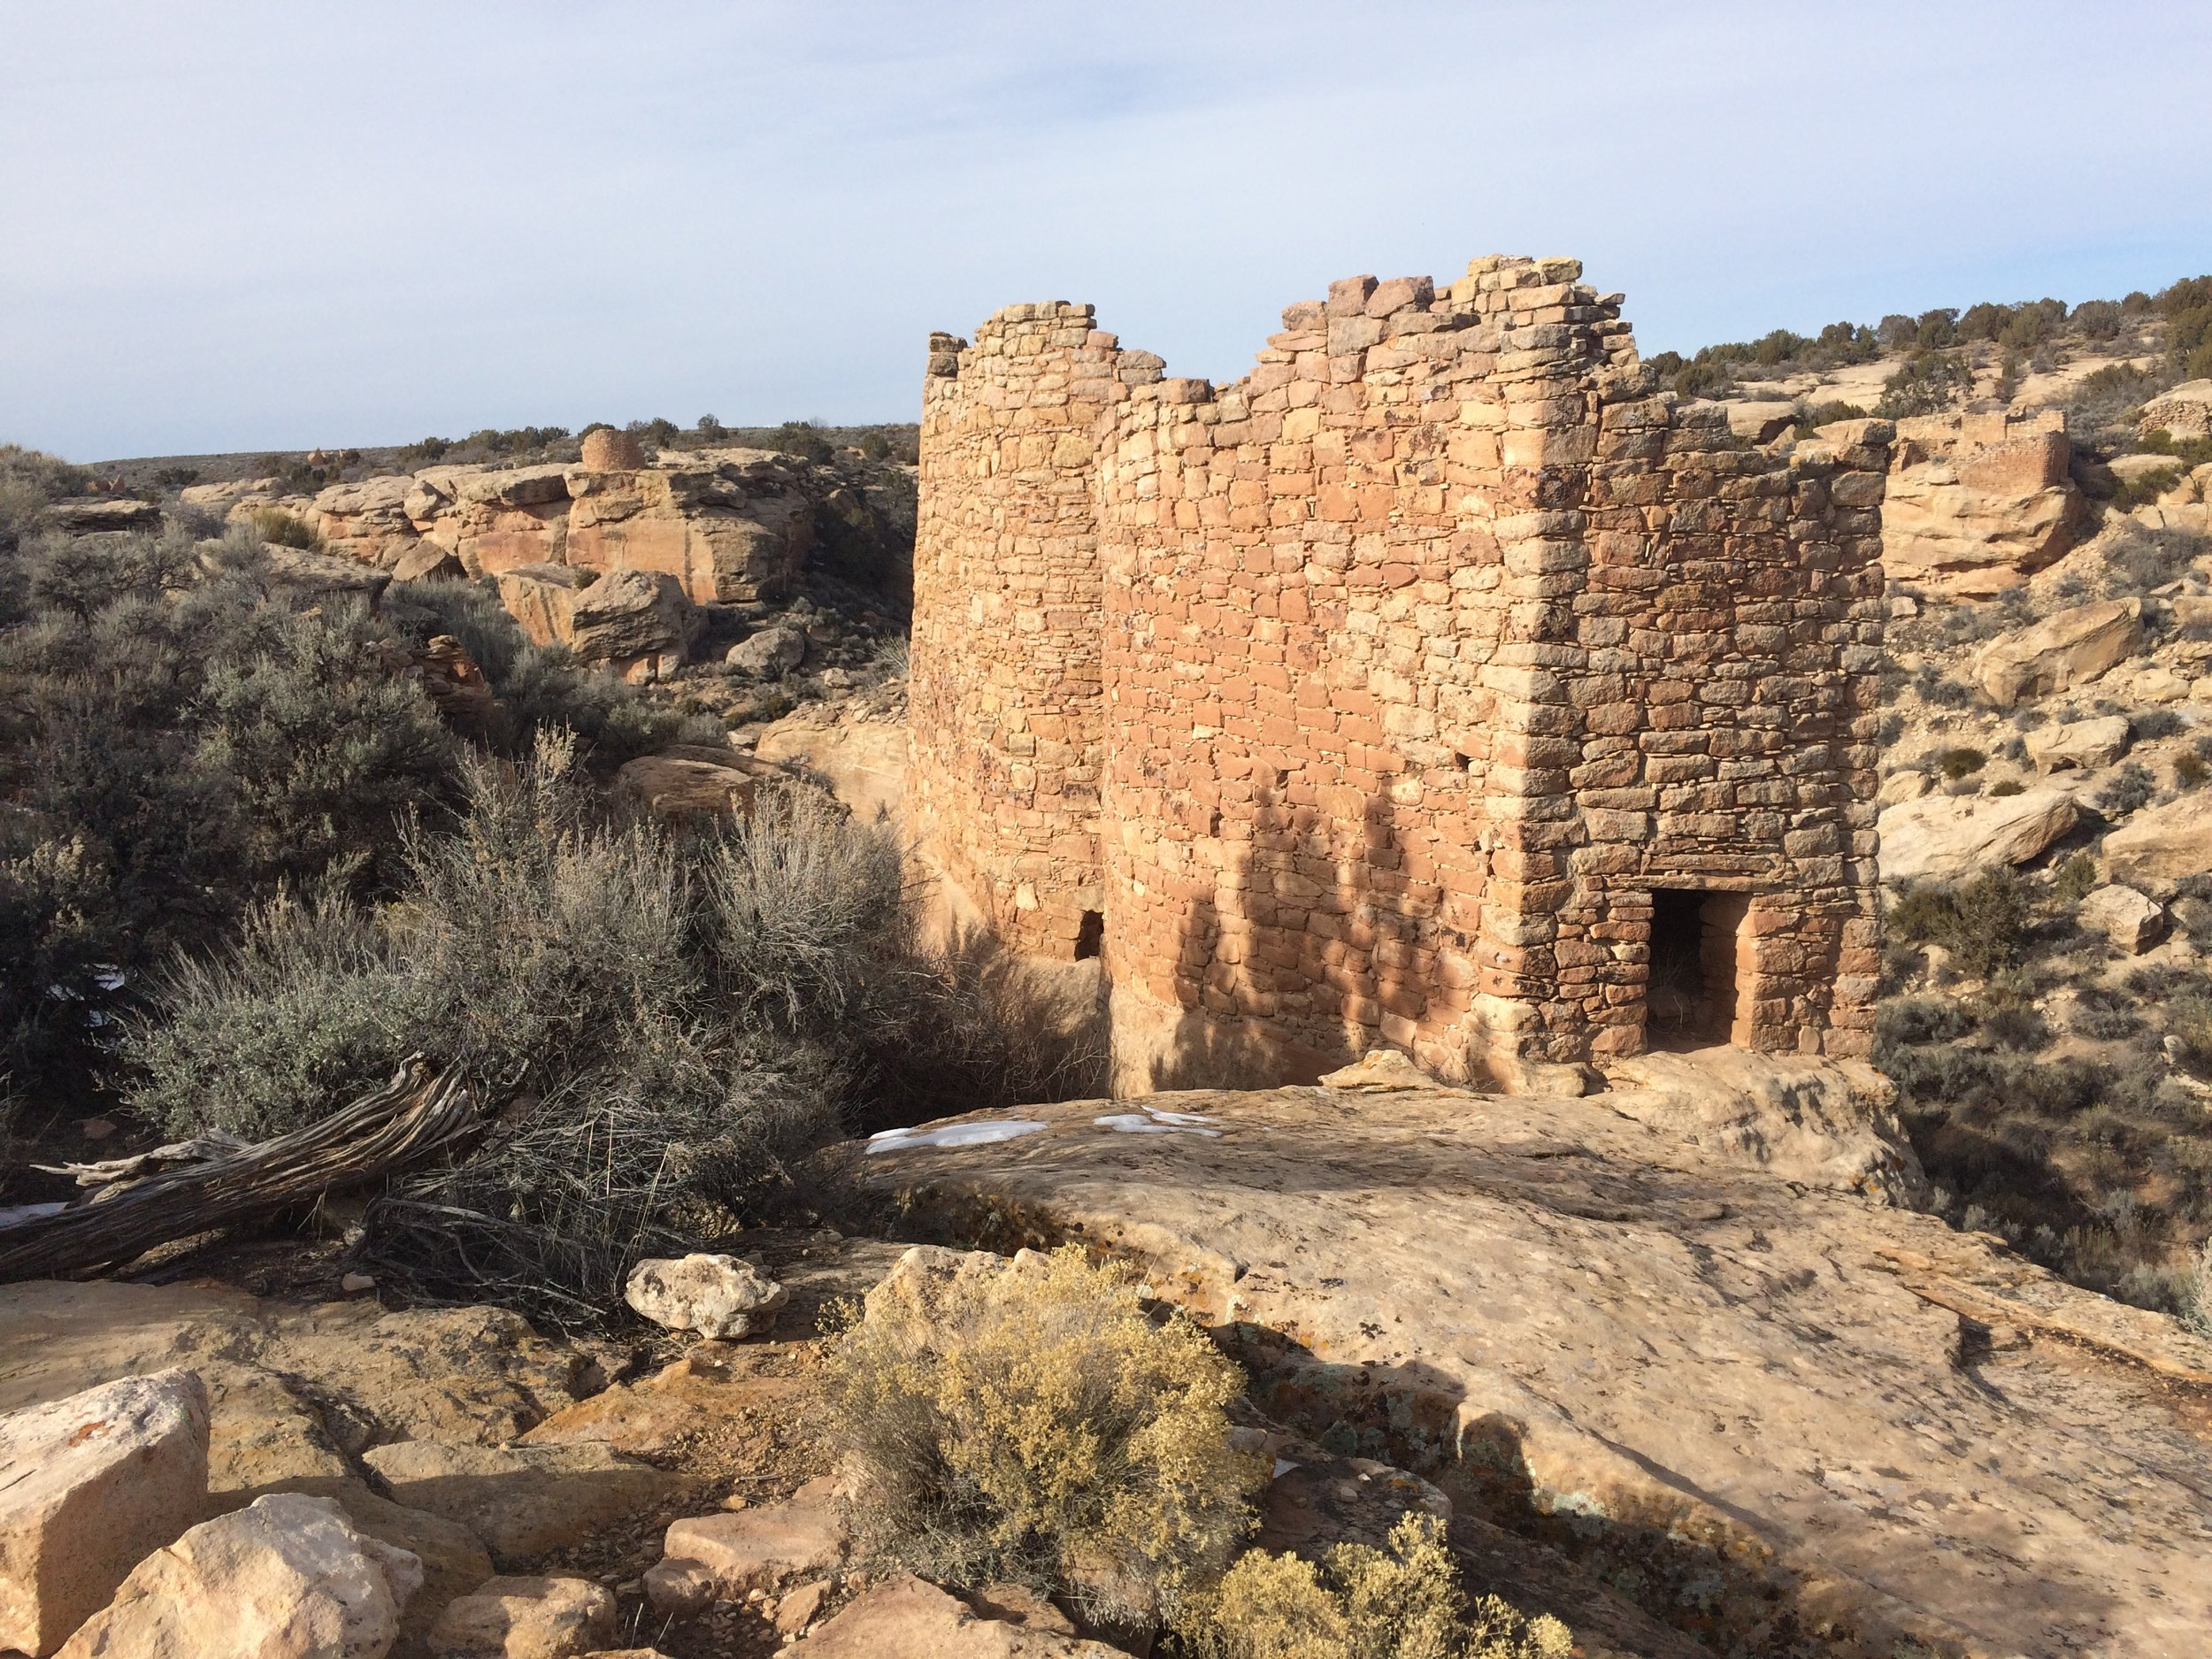 We went to a american Indian towers. We look at and it took one hour to walk around and look at the old towers, which are 800AD,which is a long time ago.